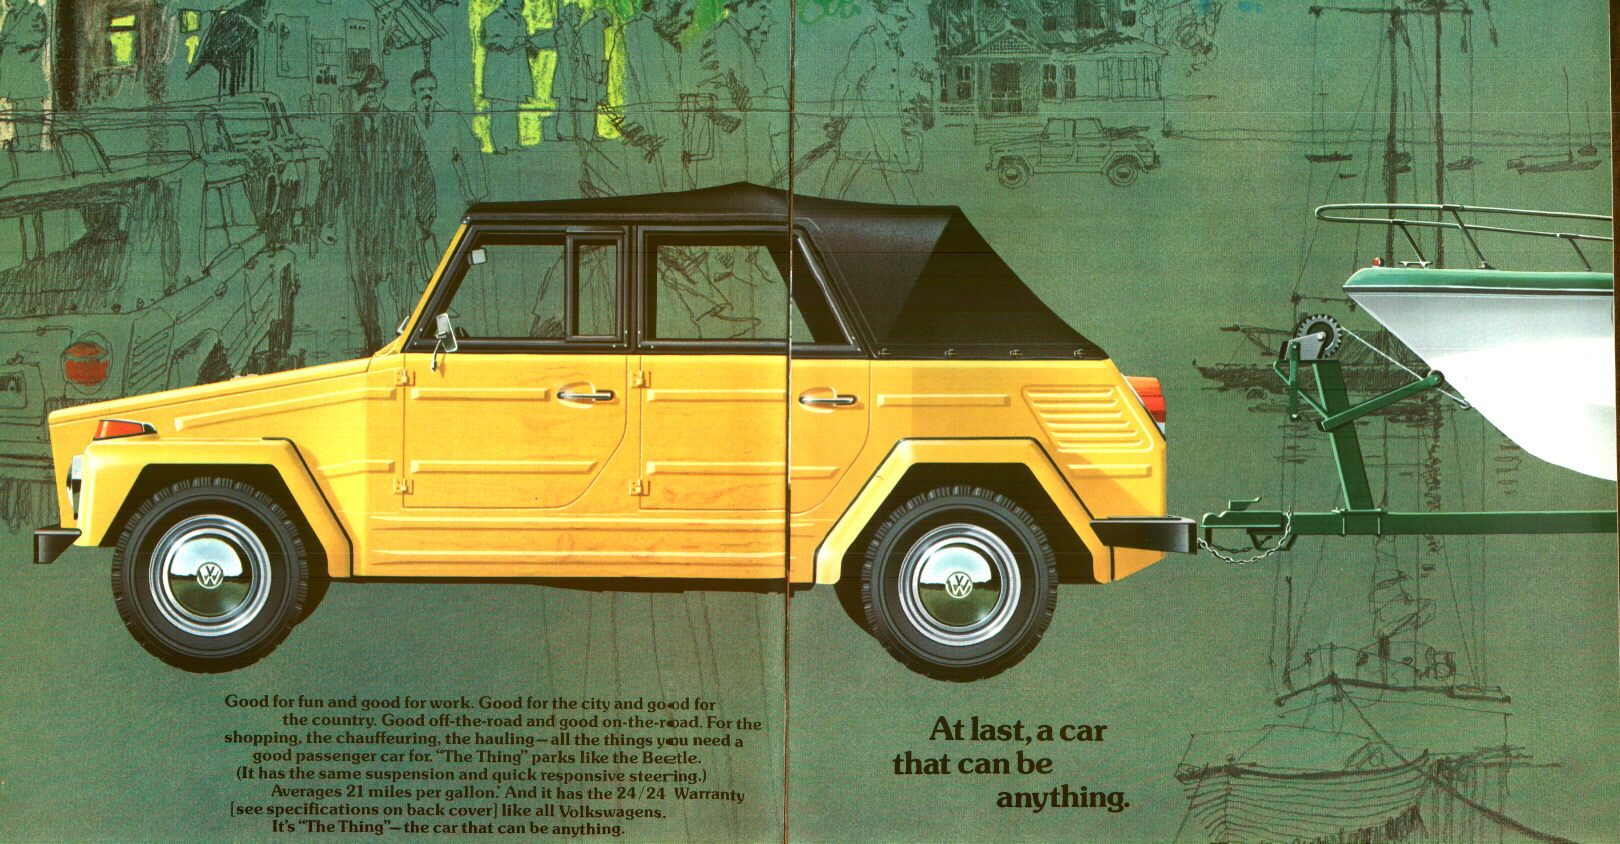 hight resolution of 1973 vw thing wiring diagram dastank com vw thing type 181 1973 vw thing wiring diagram